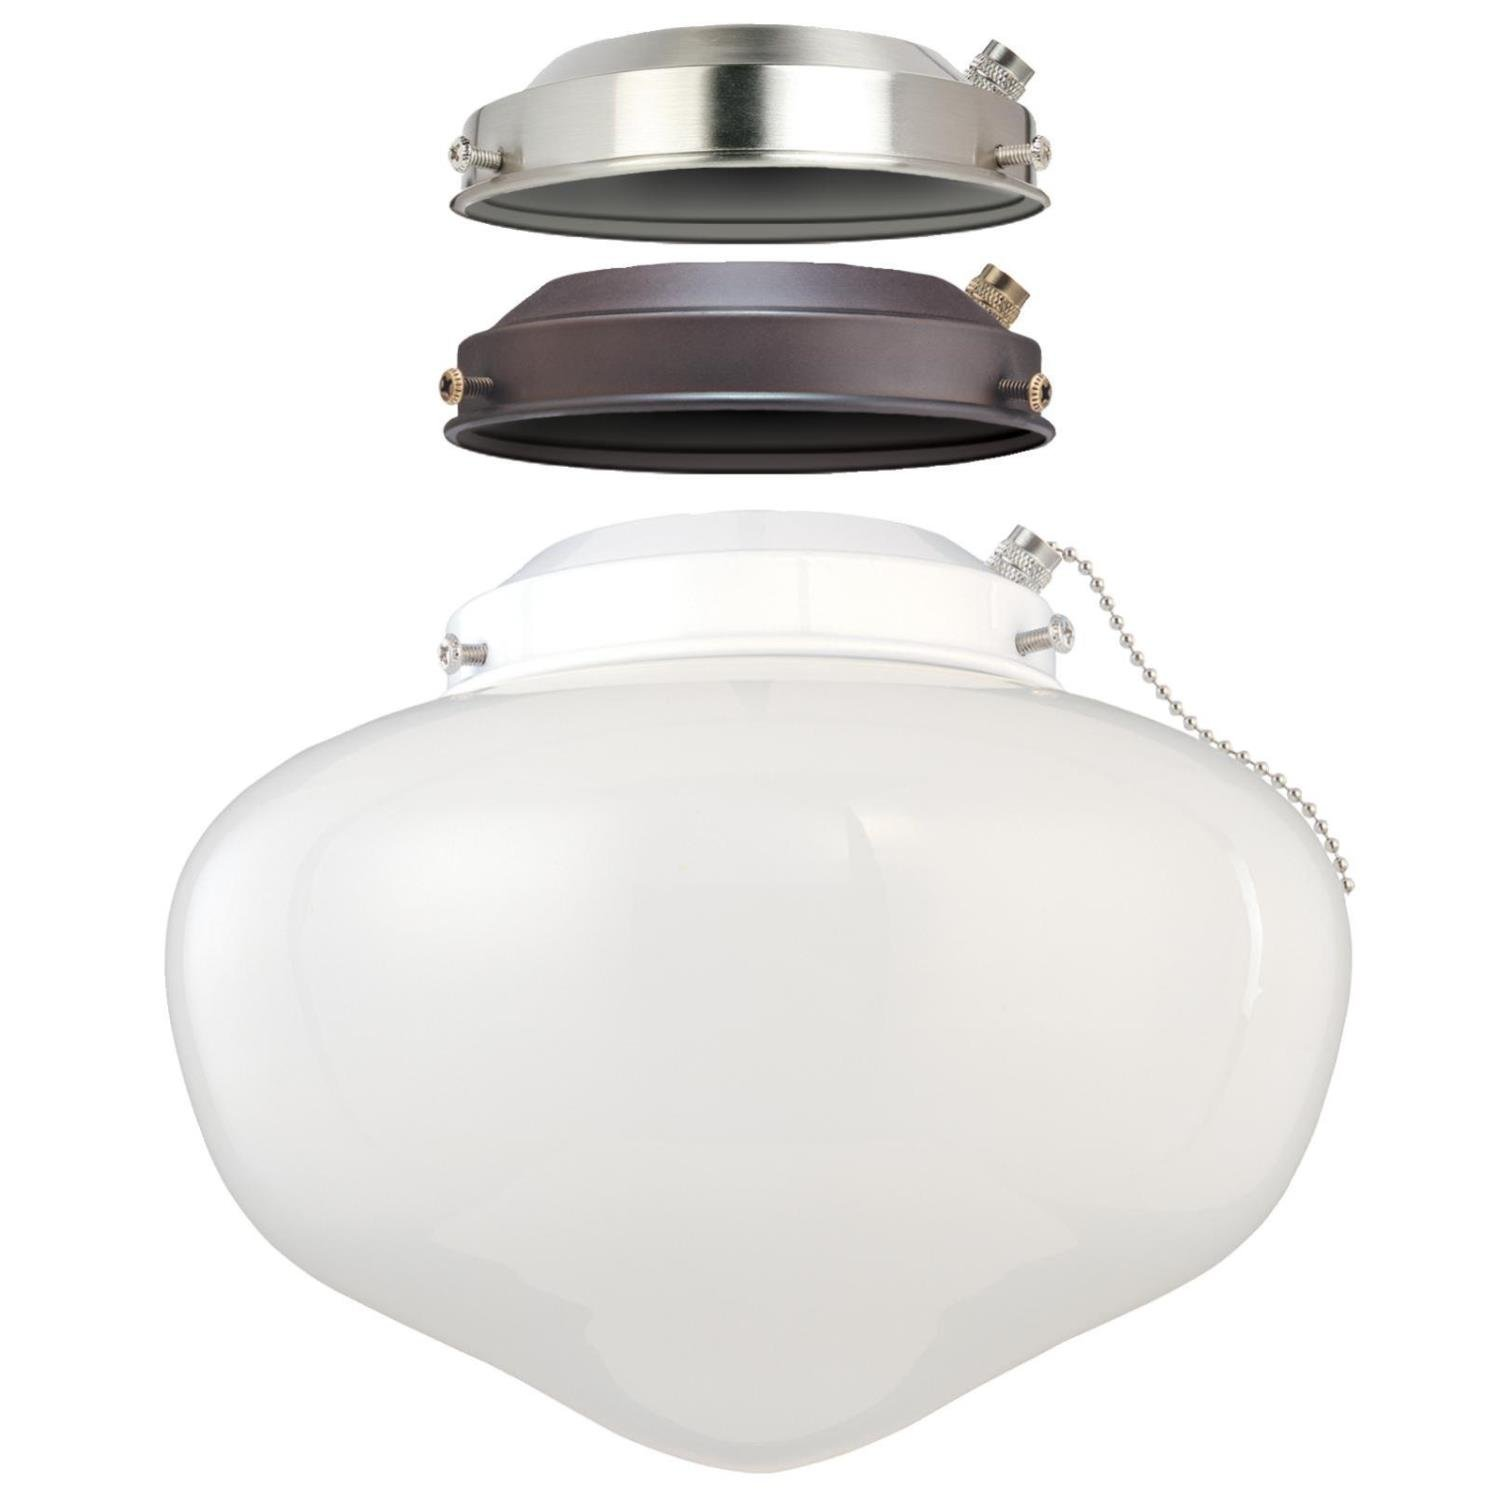 Westinghouse Lighting 7785200 LED Schoolhouse Indoor/Outdoor Energy Star Ceiling Fan Light Kit, Three Fitters with White Opal Glass by Westinghouse Lighting (Image #1)